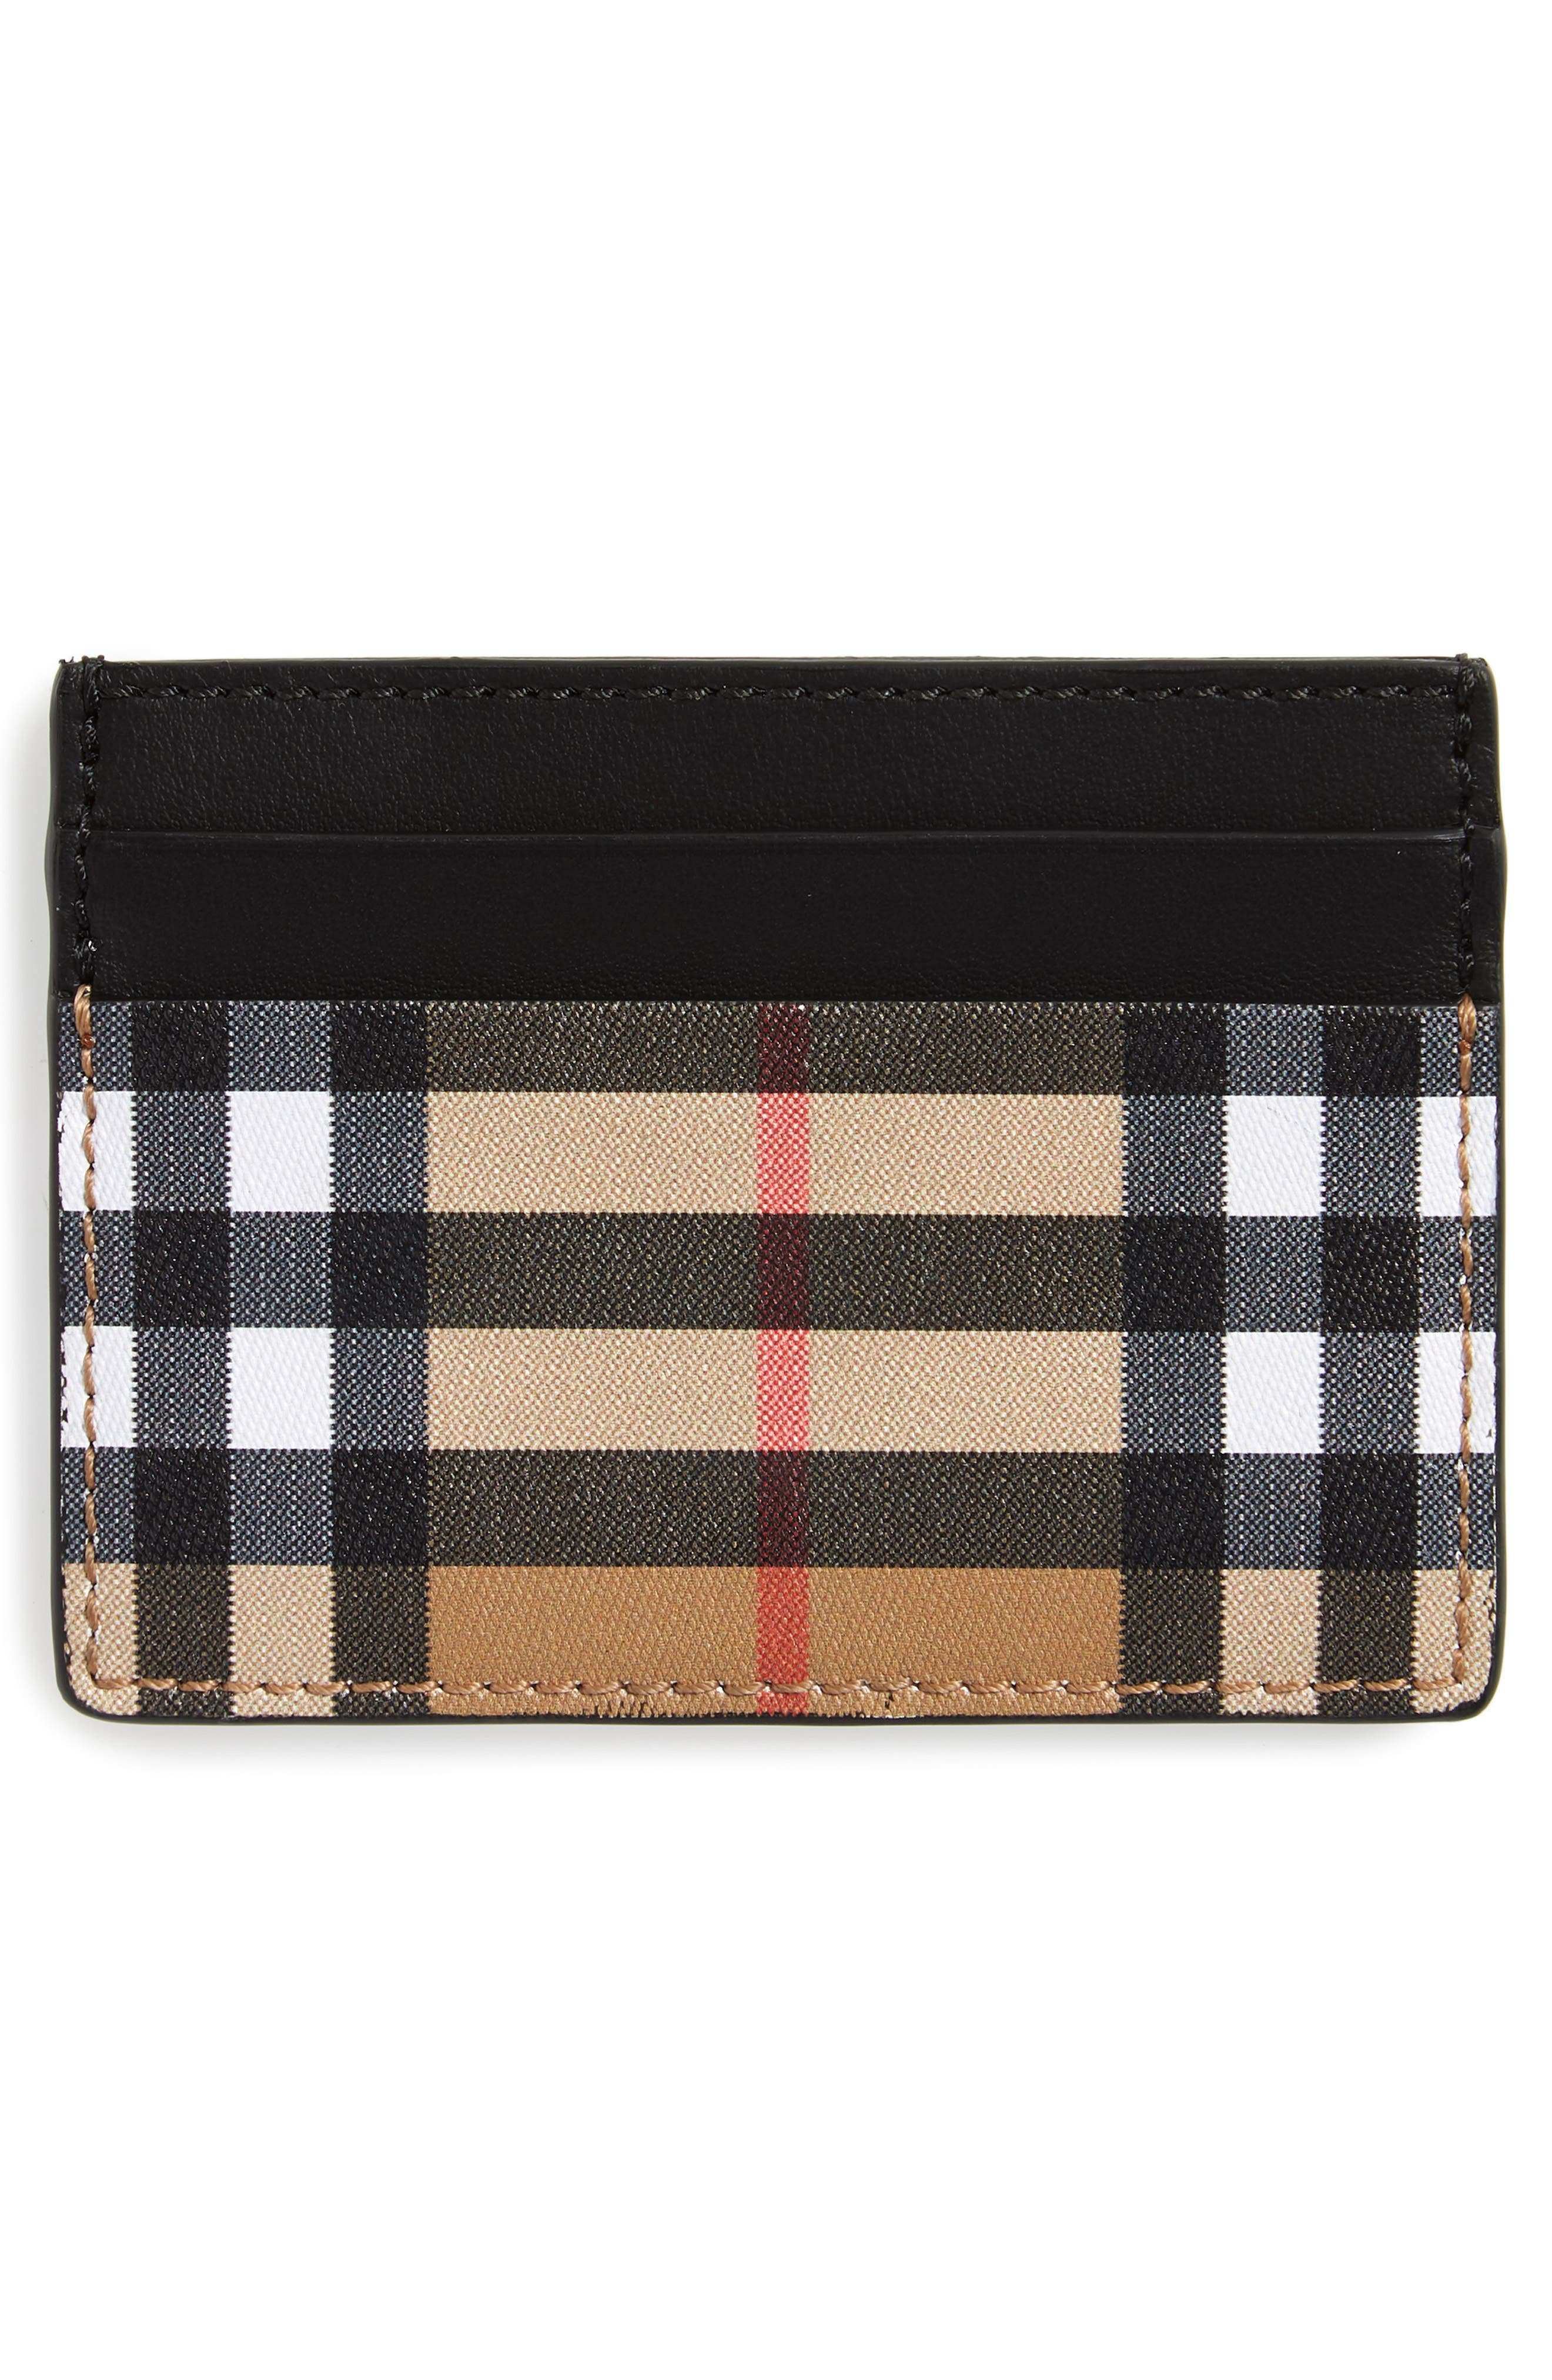 BURBERRY, Horseferry Leather Card Case, Alternate thumbnail 2, color, BLACK